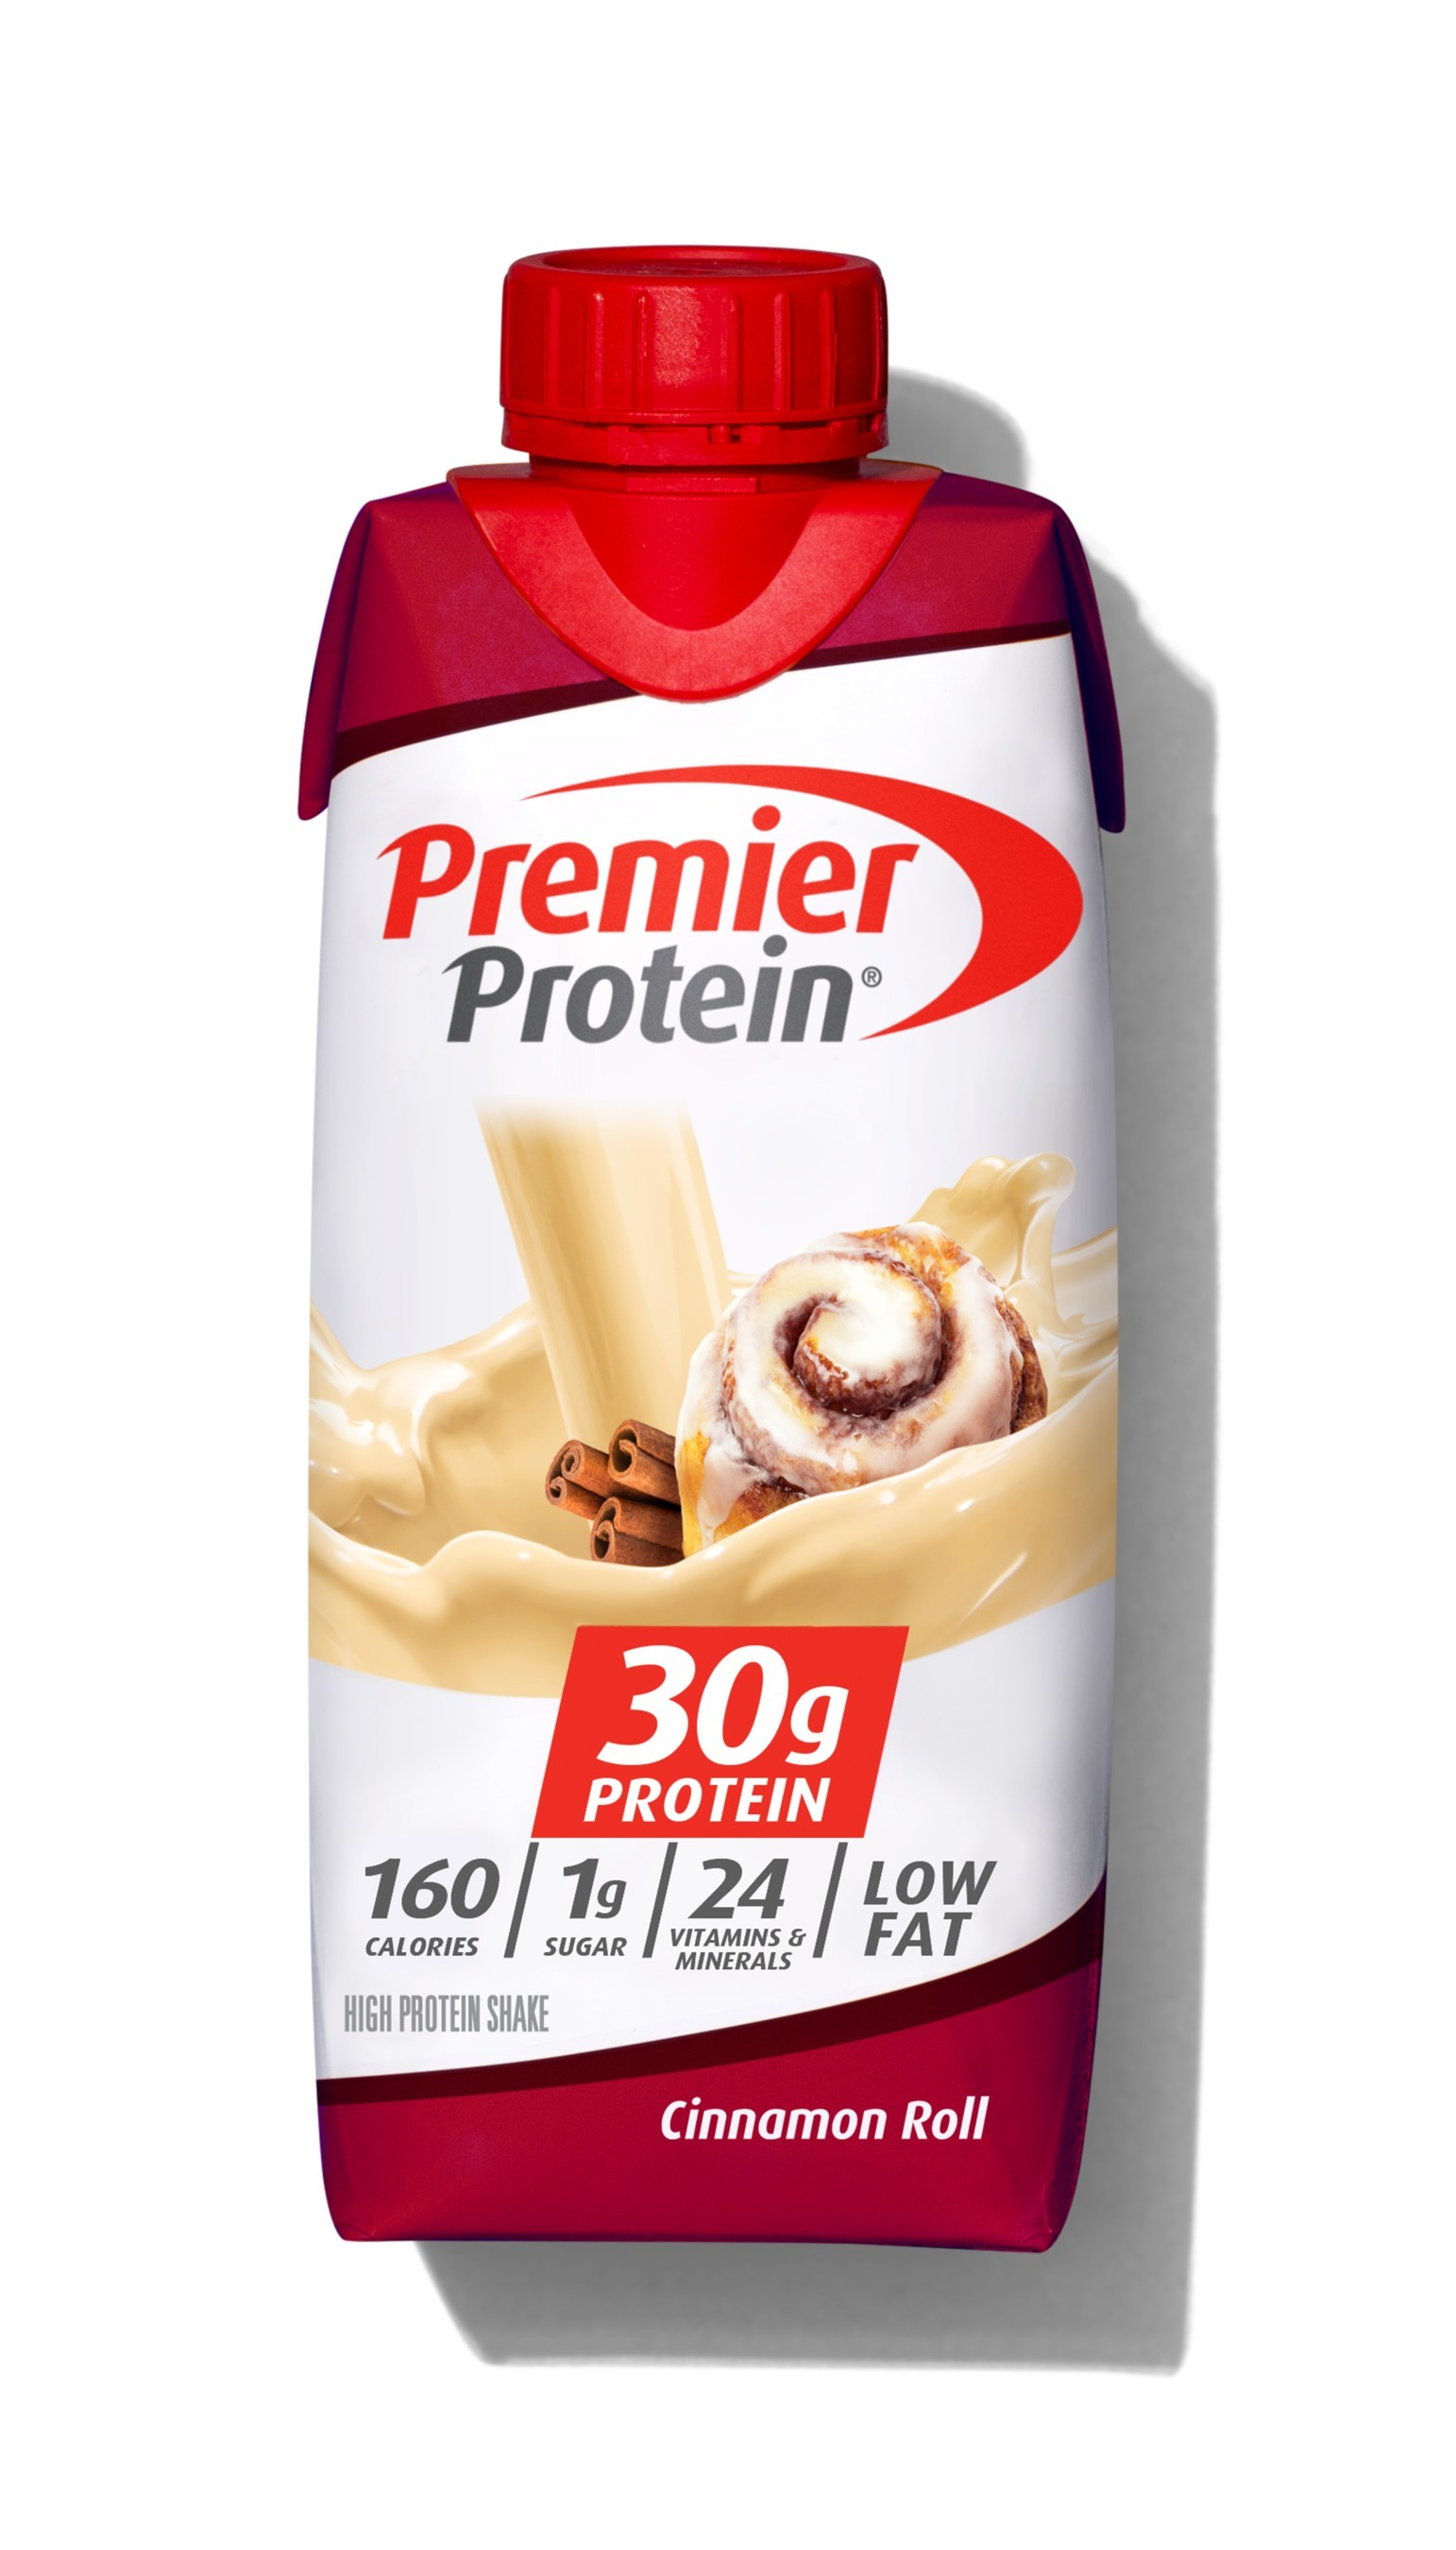 Premier Protein® Introduces NEW Cinnamon Roll Flavored Protein Shakes